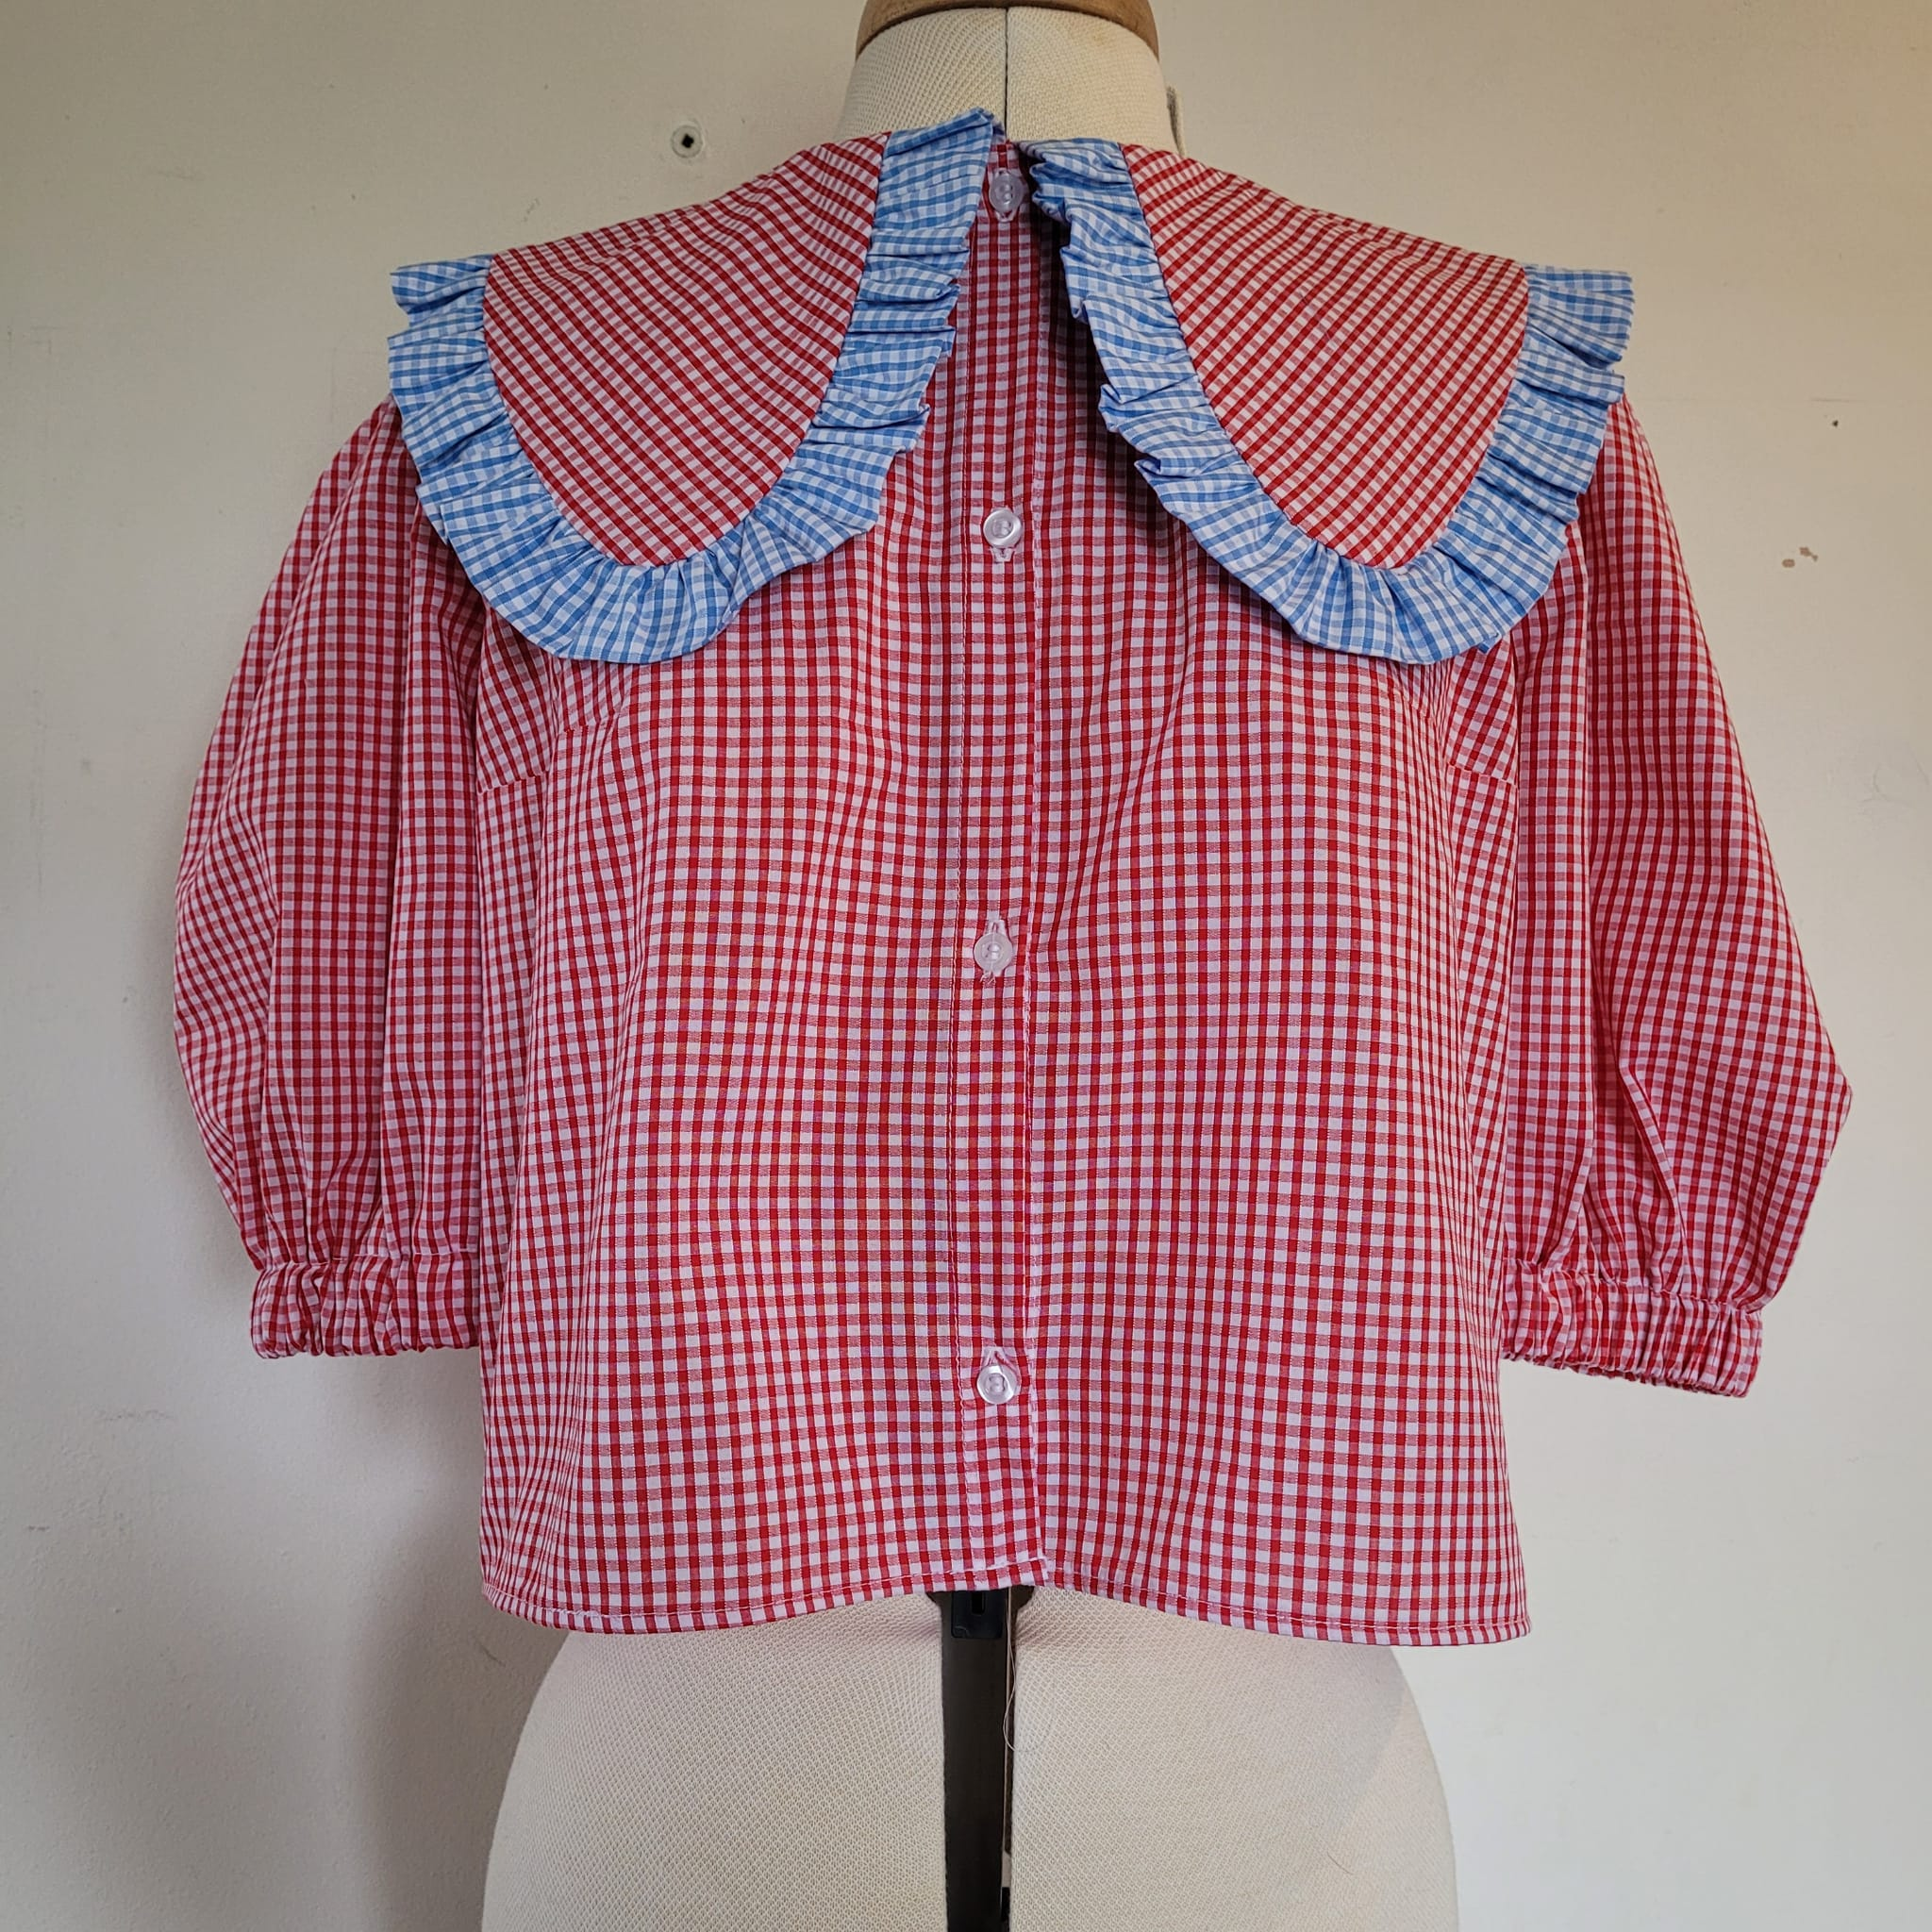 Frill collar blouse with contrast trim